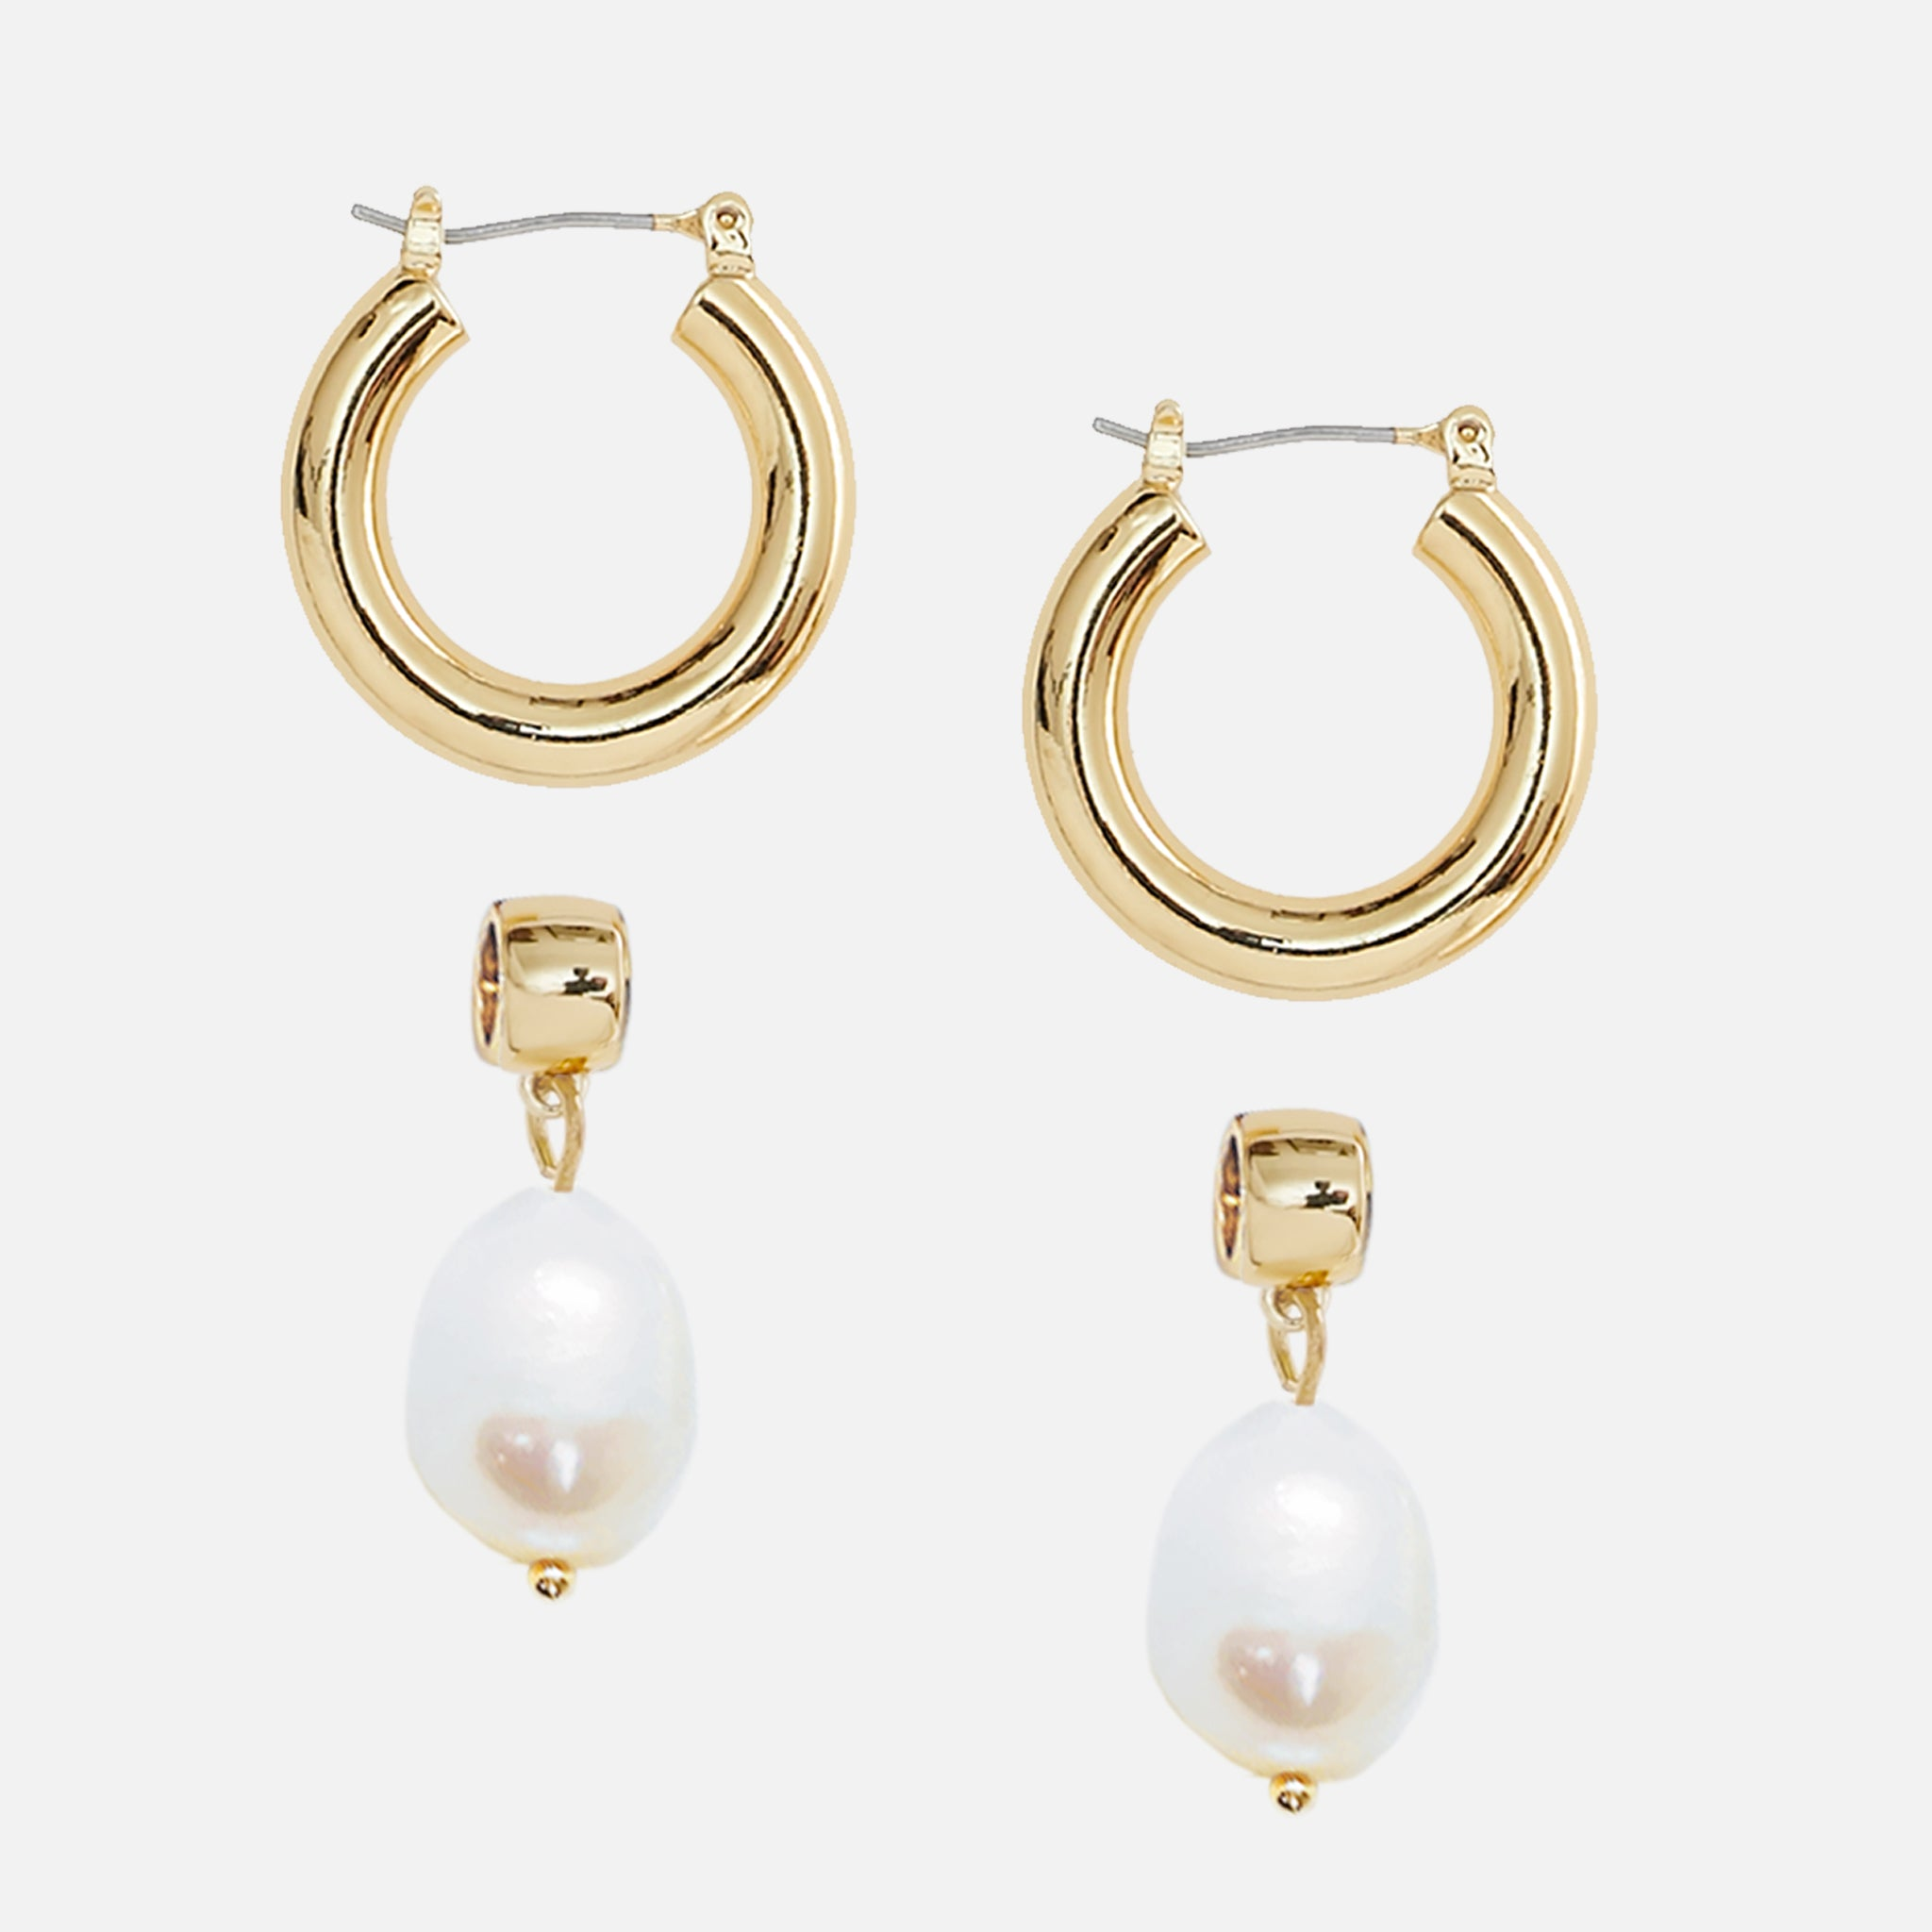 North North North Gold Pearl Earrings | Johnny Earring Gold